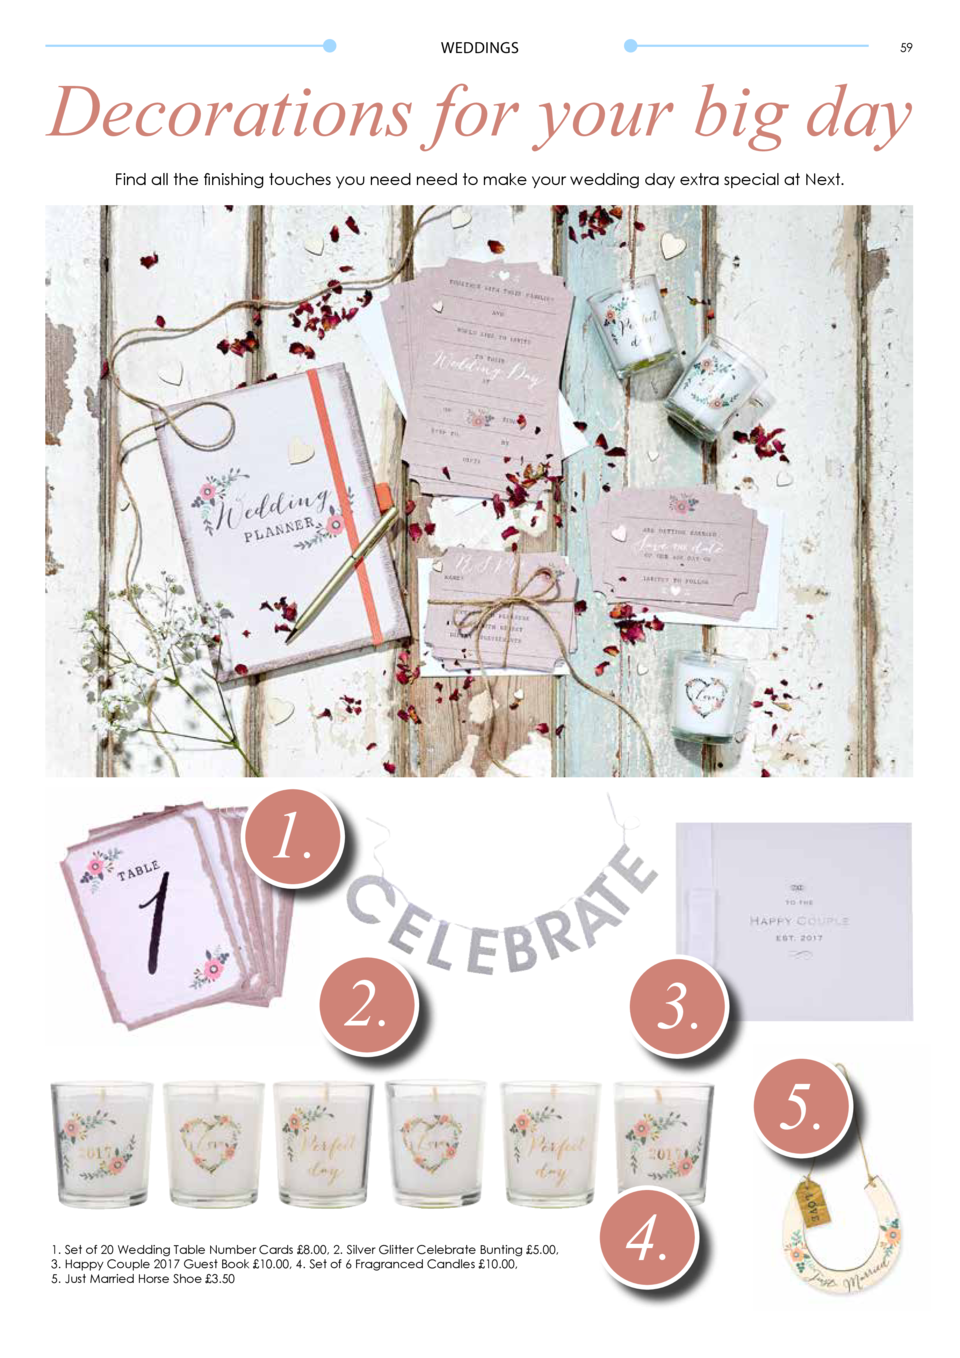 Notts Aspect 5 How To Build A Horse Barn Hometips Weddings 59 Decorations For Your Big Day Find All The Finishing Touches You Need